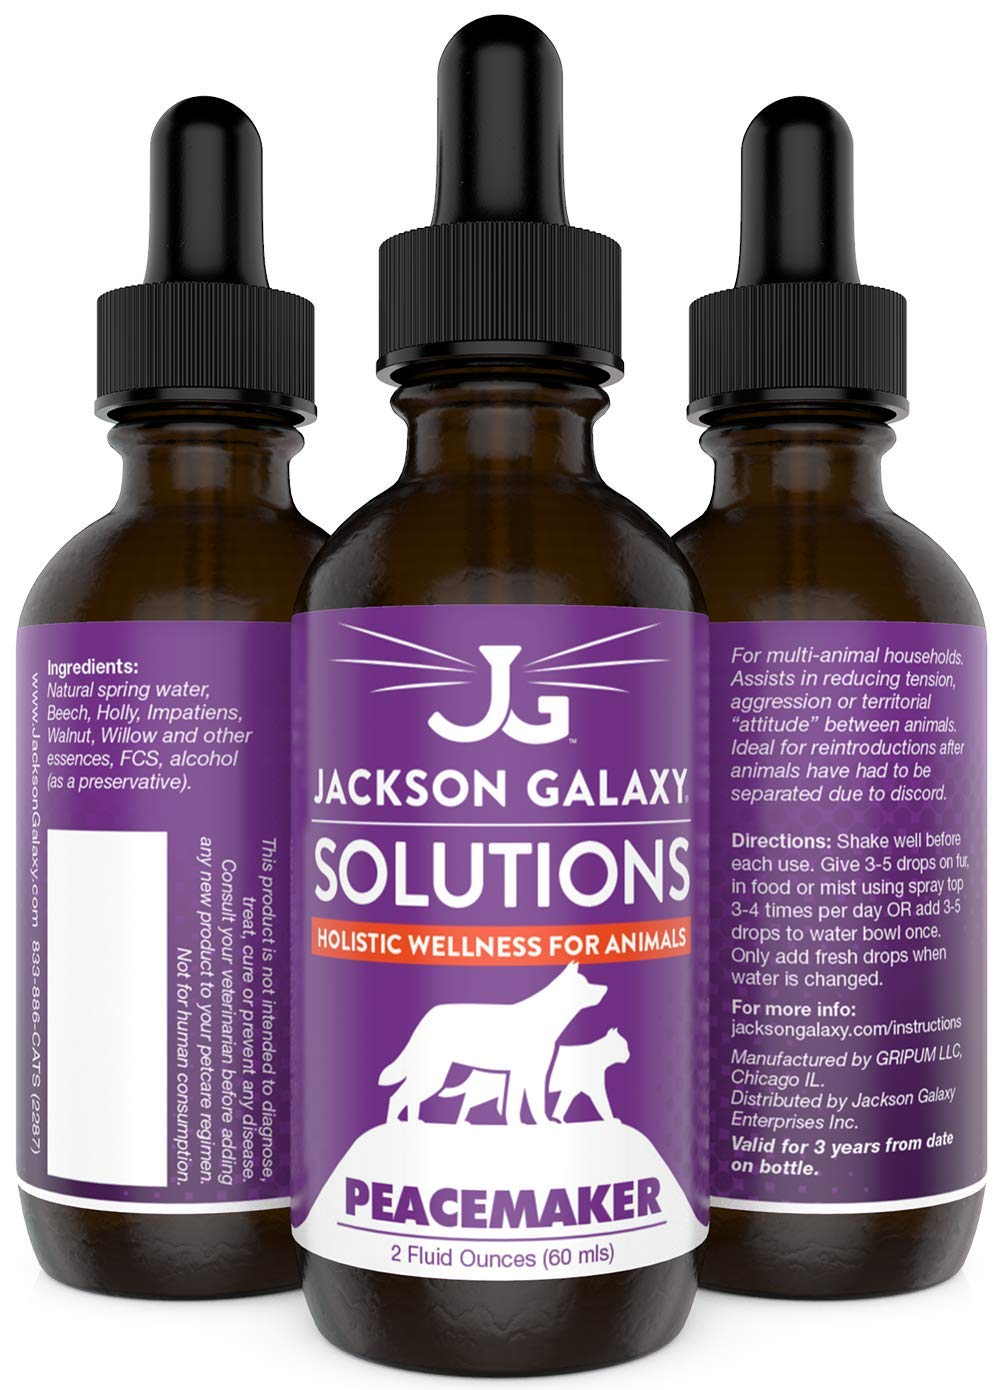 Jackson Galaxy: Peacemaker (2 oz.) - Pet Solution - Promotes Sense of Community - Can Reduce Aggression, Tension, Jealousy - All-Natural Formula - Reiki Energy 1